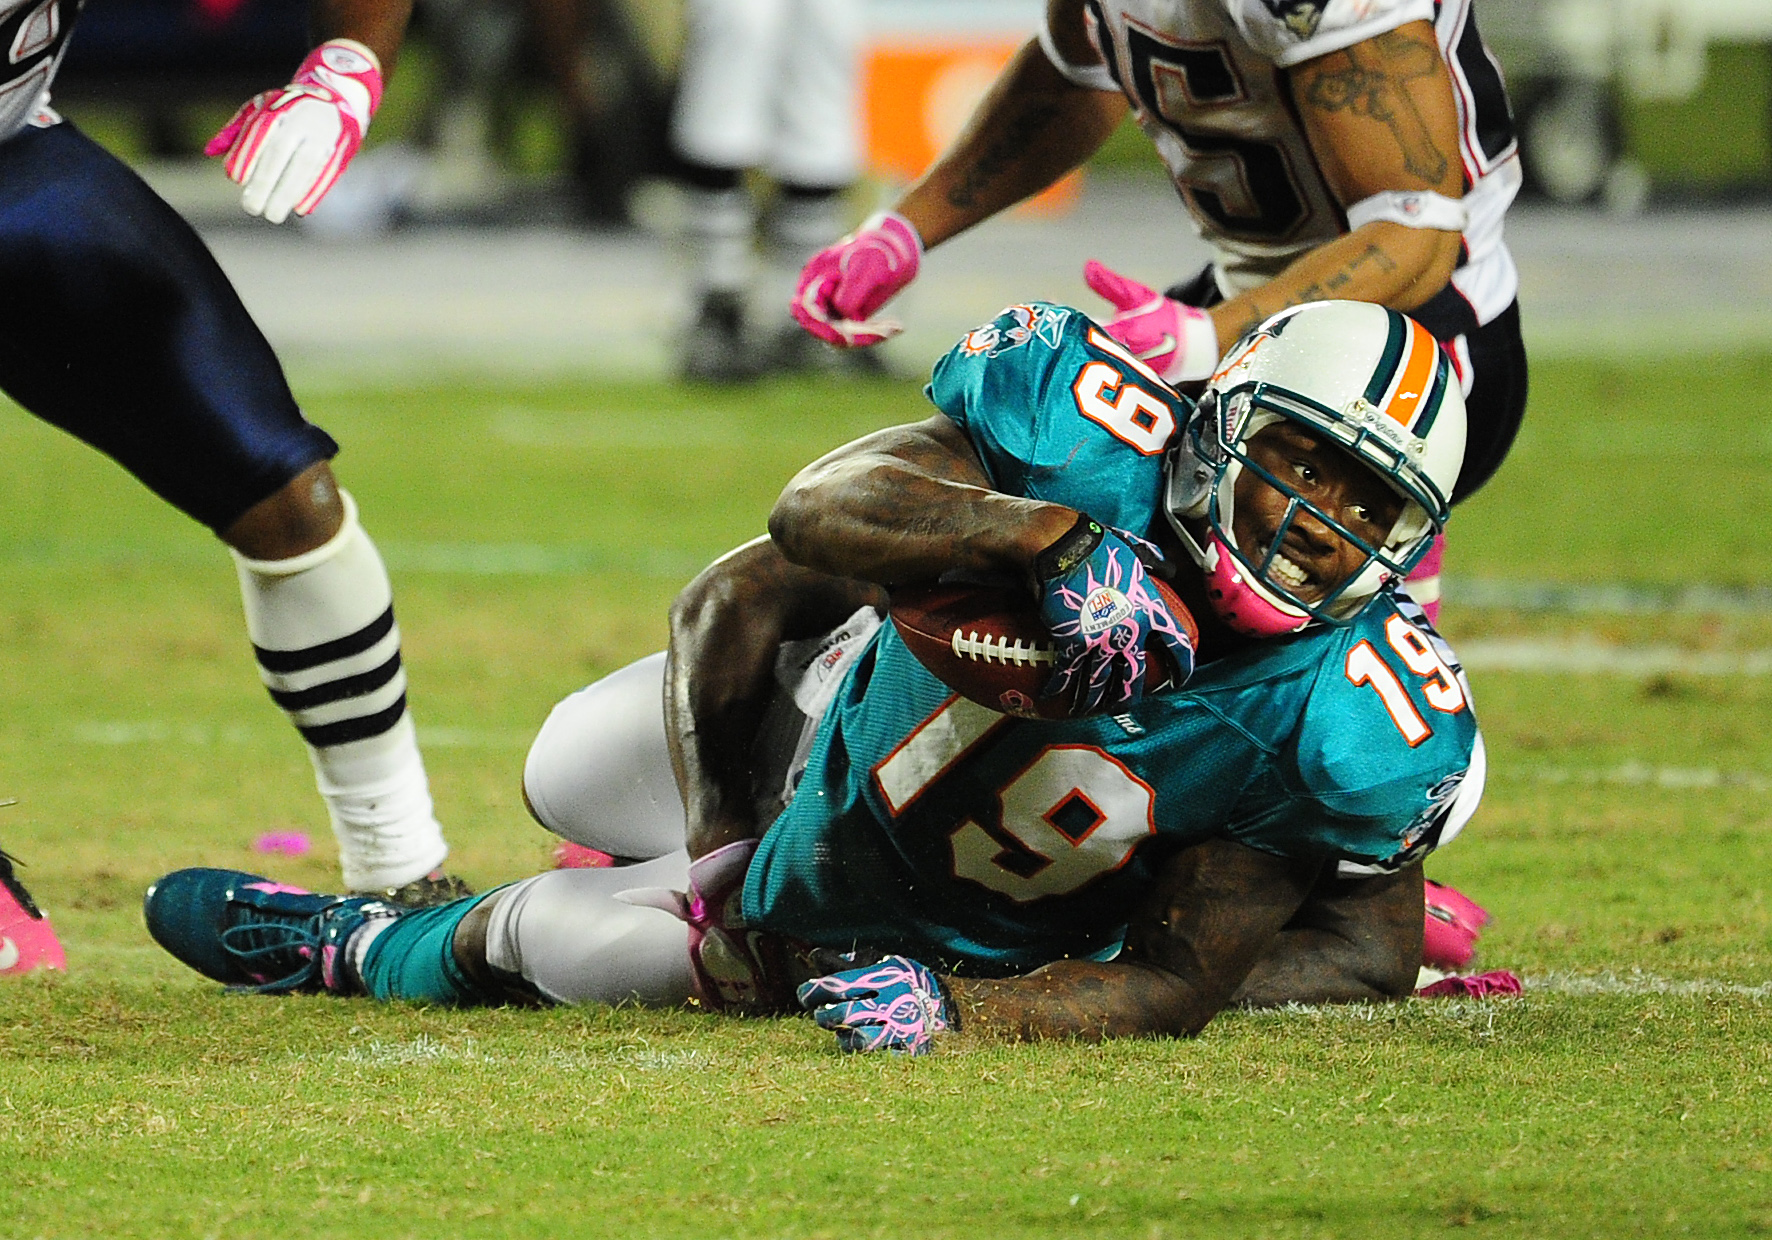 MIAMI - OCTOBER 4: Brandon Marshall #19 of the Miami Dolphins is tackled by Kyle Arrington #27 of the New England Patriots at Sun Life Field on October 4, 2010 in Miami, Florida. (Photo by Scott Cunningham/Getty Images)